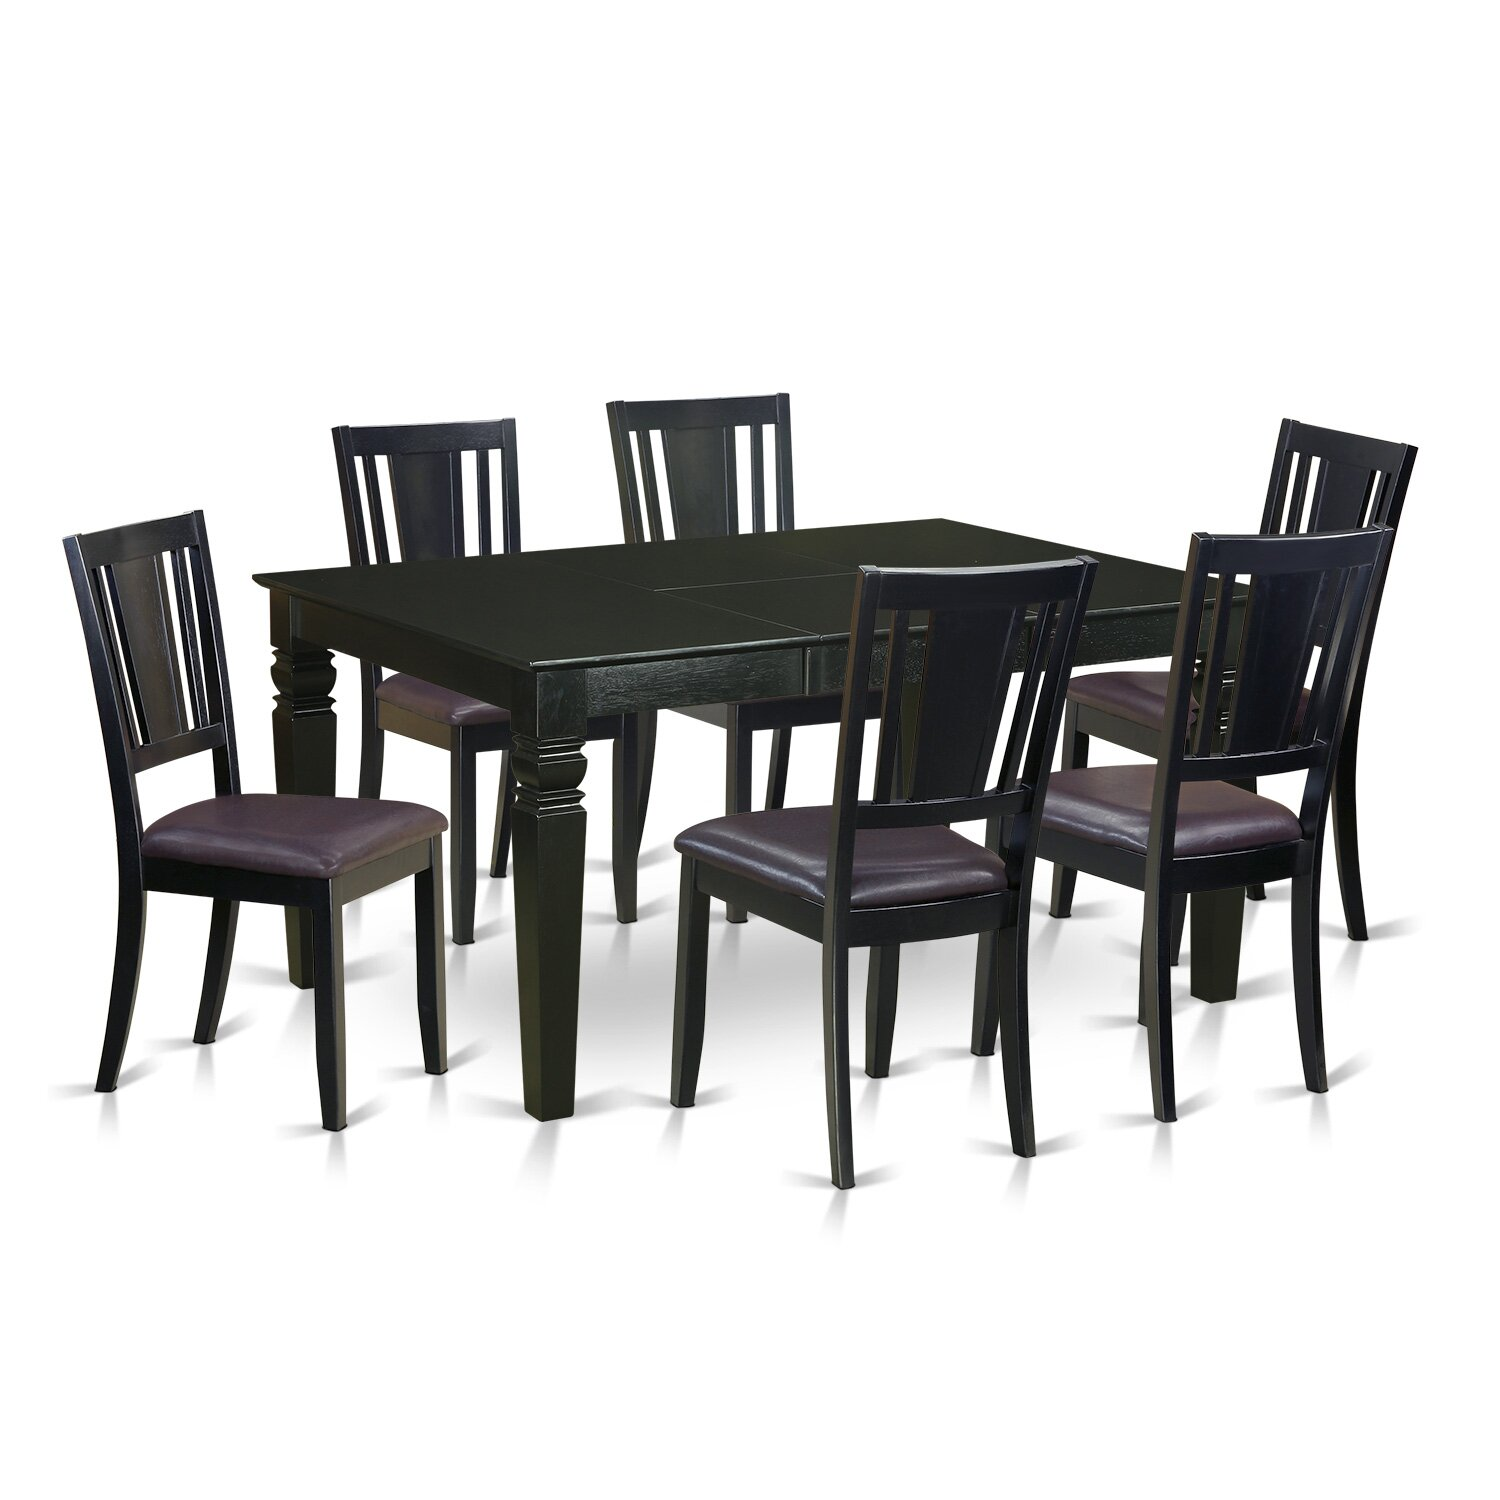 wooden importers weston 7 piece dining set wayfair. Black Bedroom Furniture Sets. Home Design Ideas